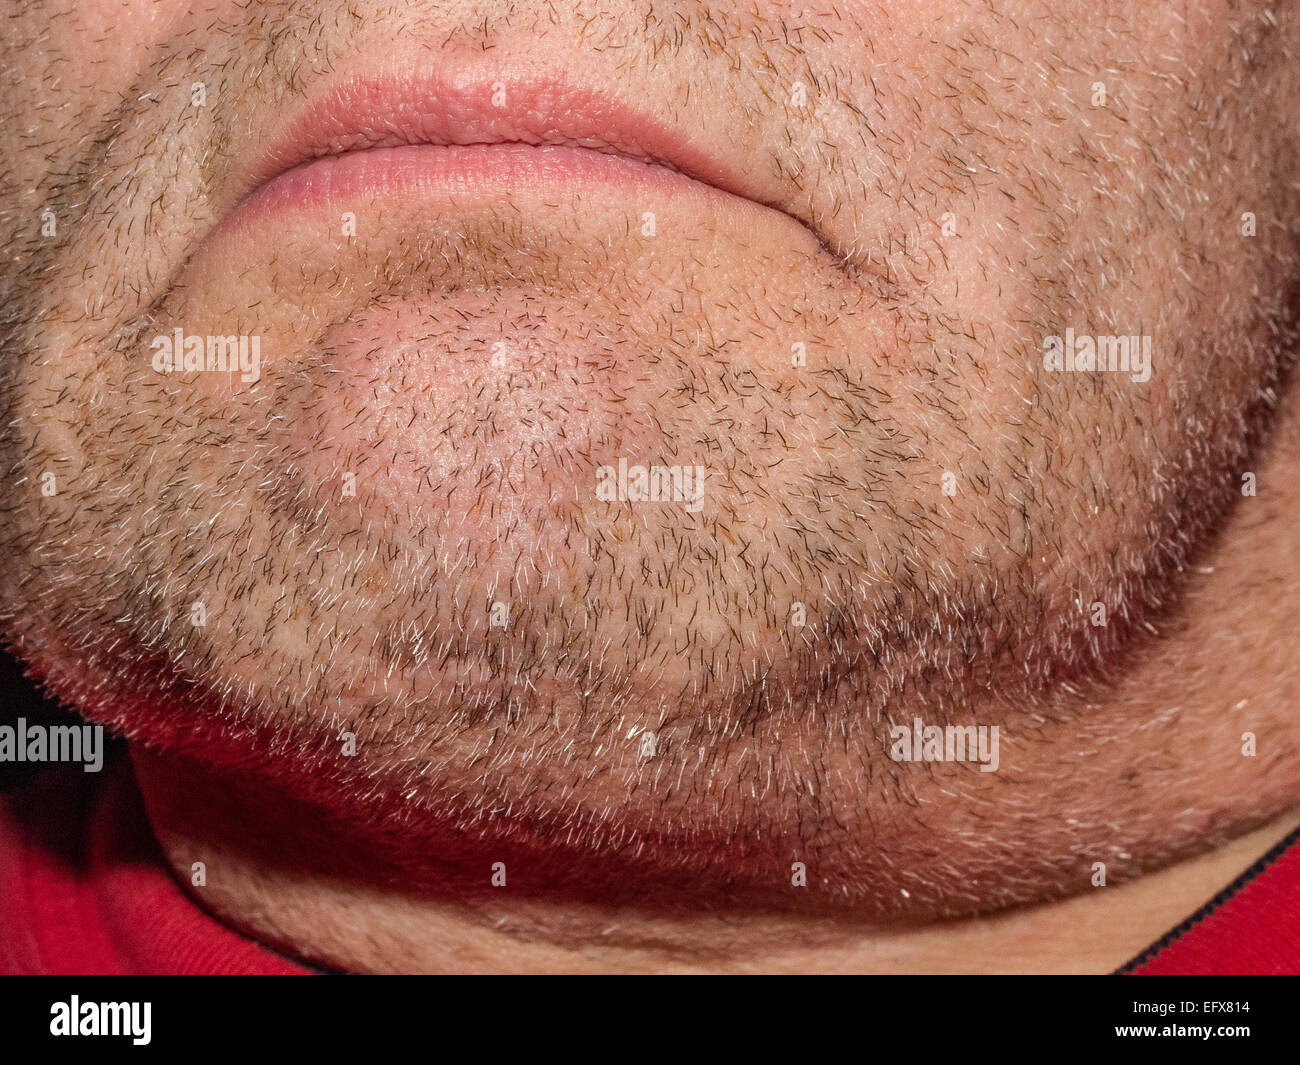 Macro close-up image of a heavily stubbled male chin showing beard growth. Model is unidentifiable. Only chin and - Stock Image